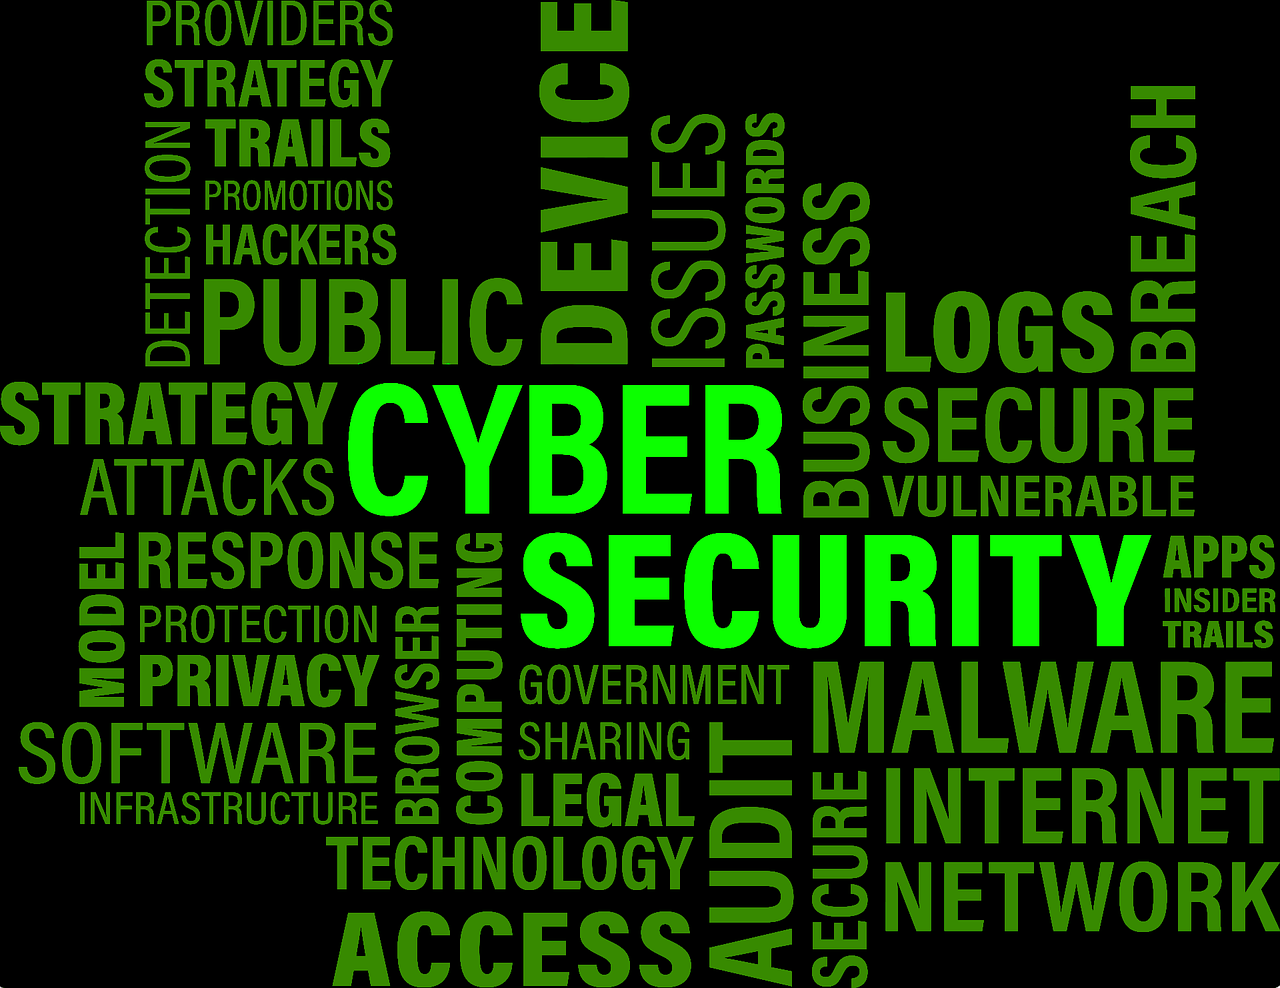 More than 7m Separate Cyber Attacks on Small Businesses in 2 Years